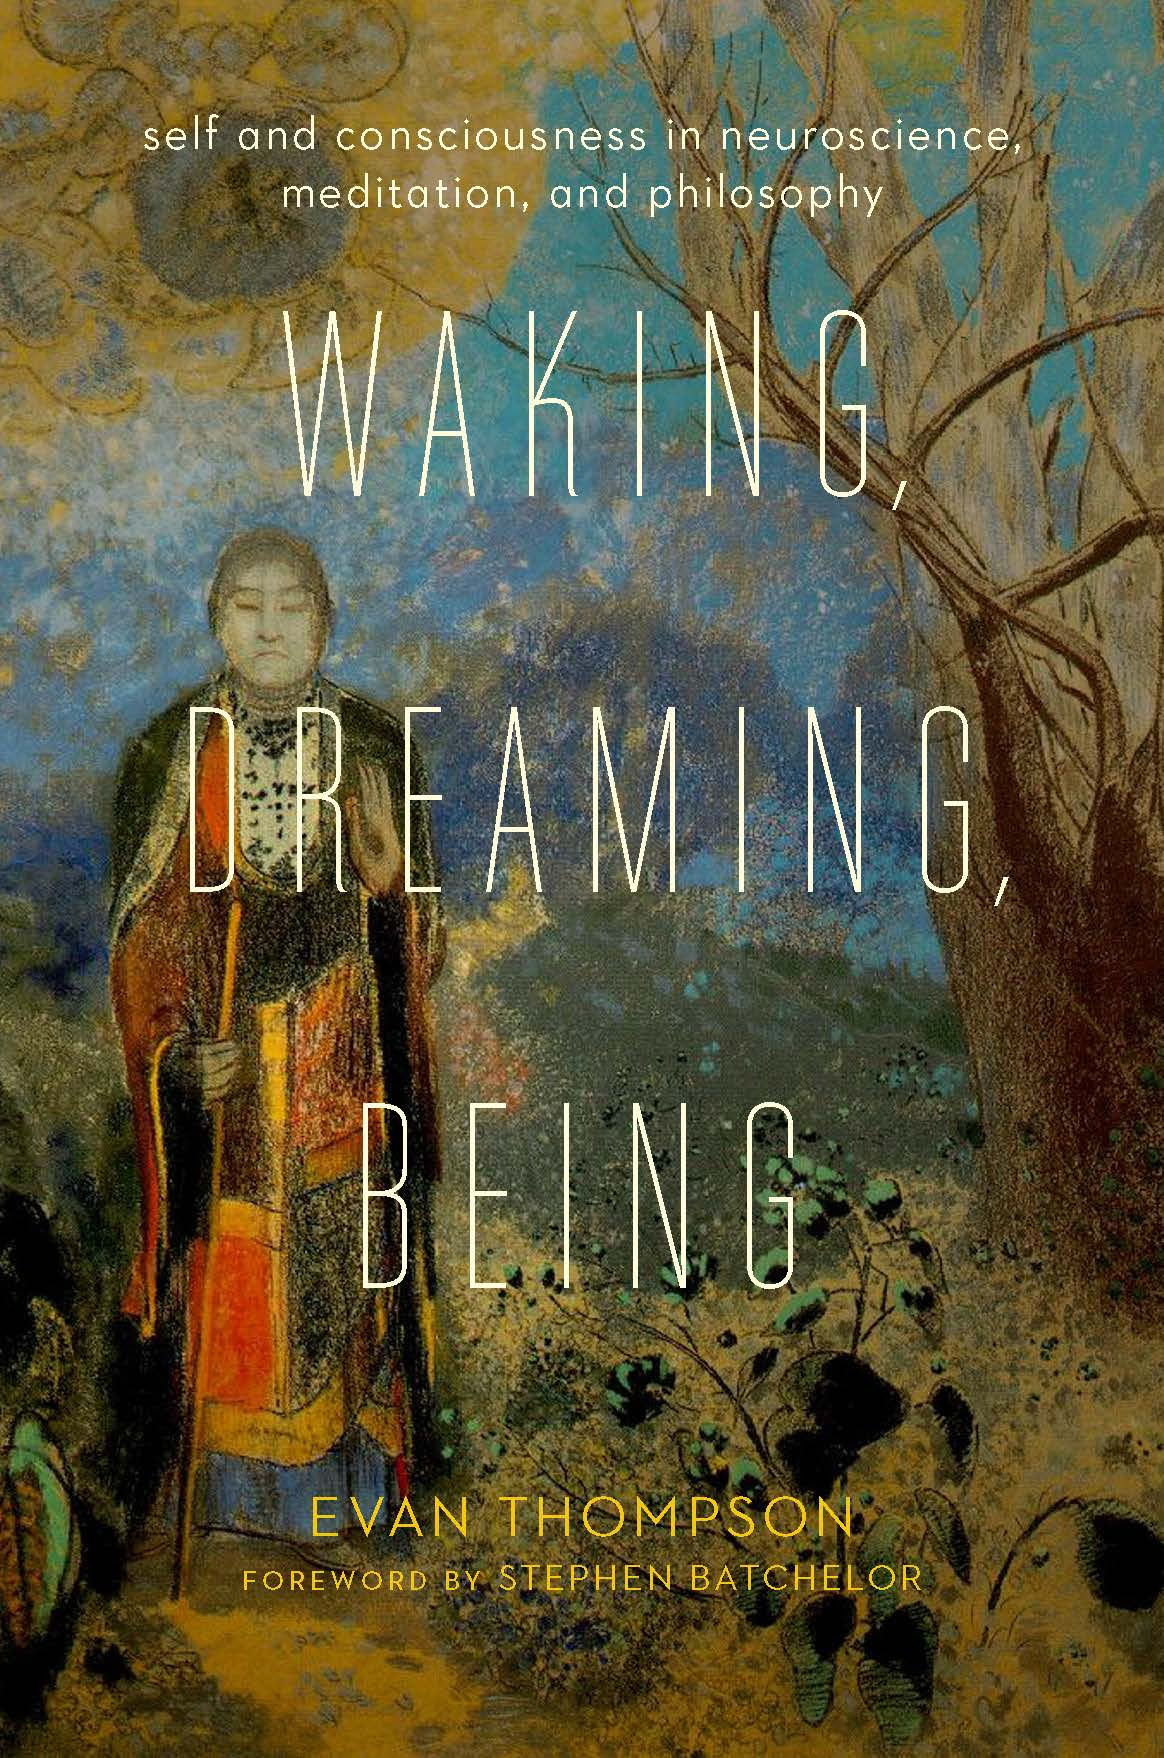 http://evanthompsondotme.files.wordpress.com/2012/11/waking-dreaming-being.jpg